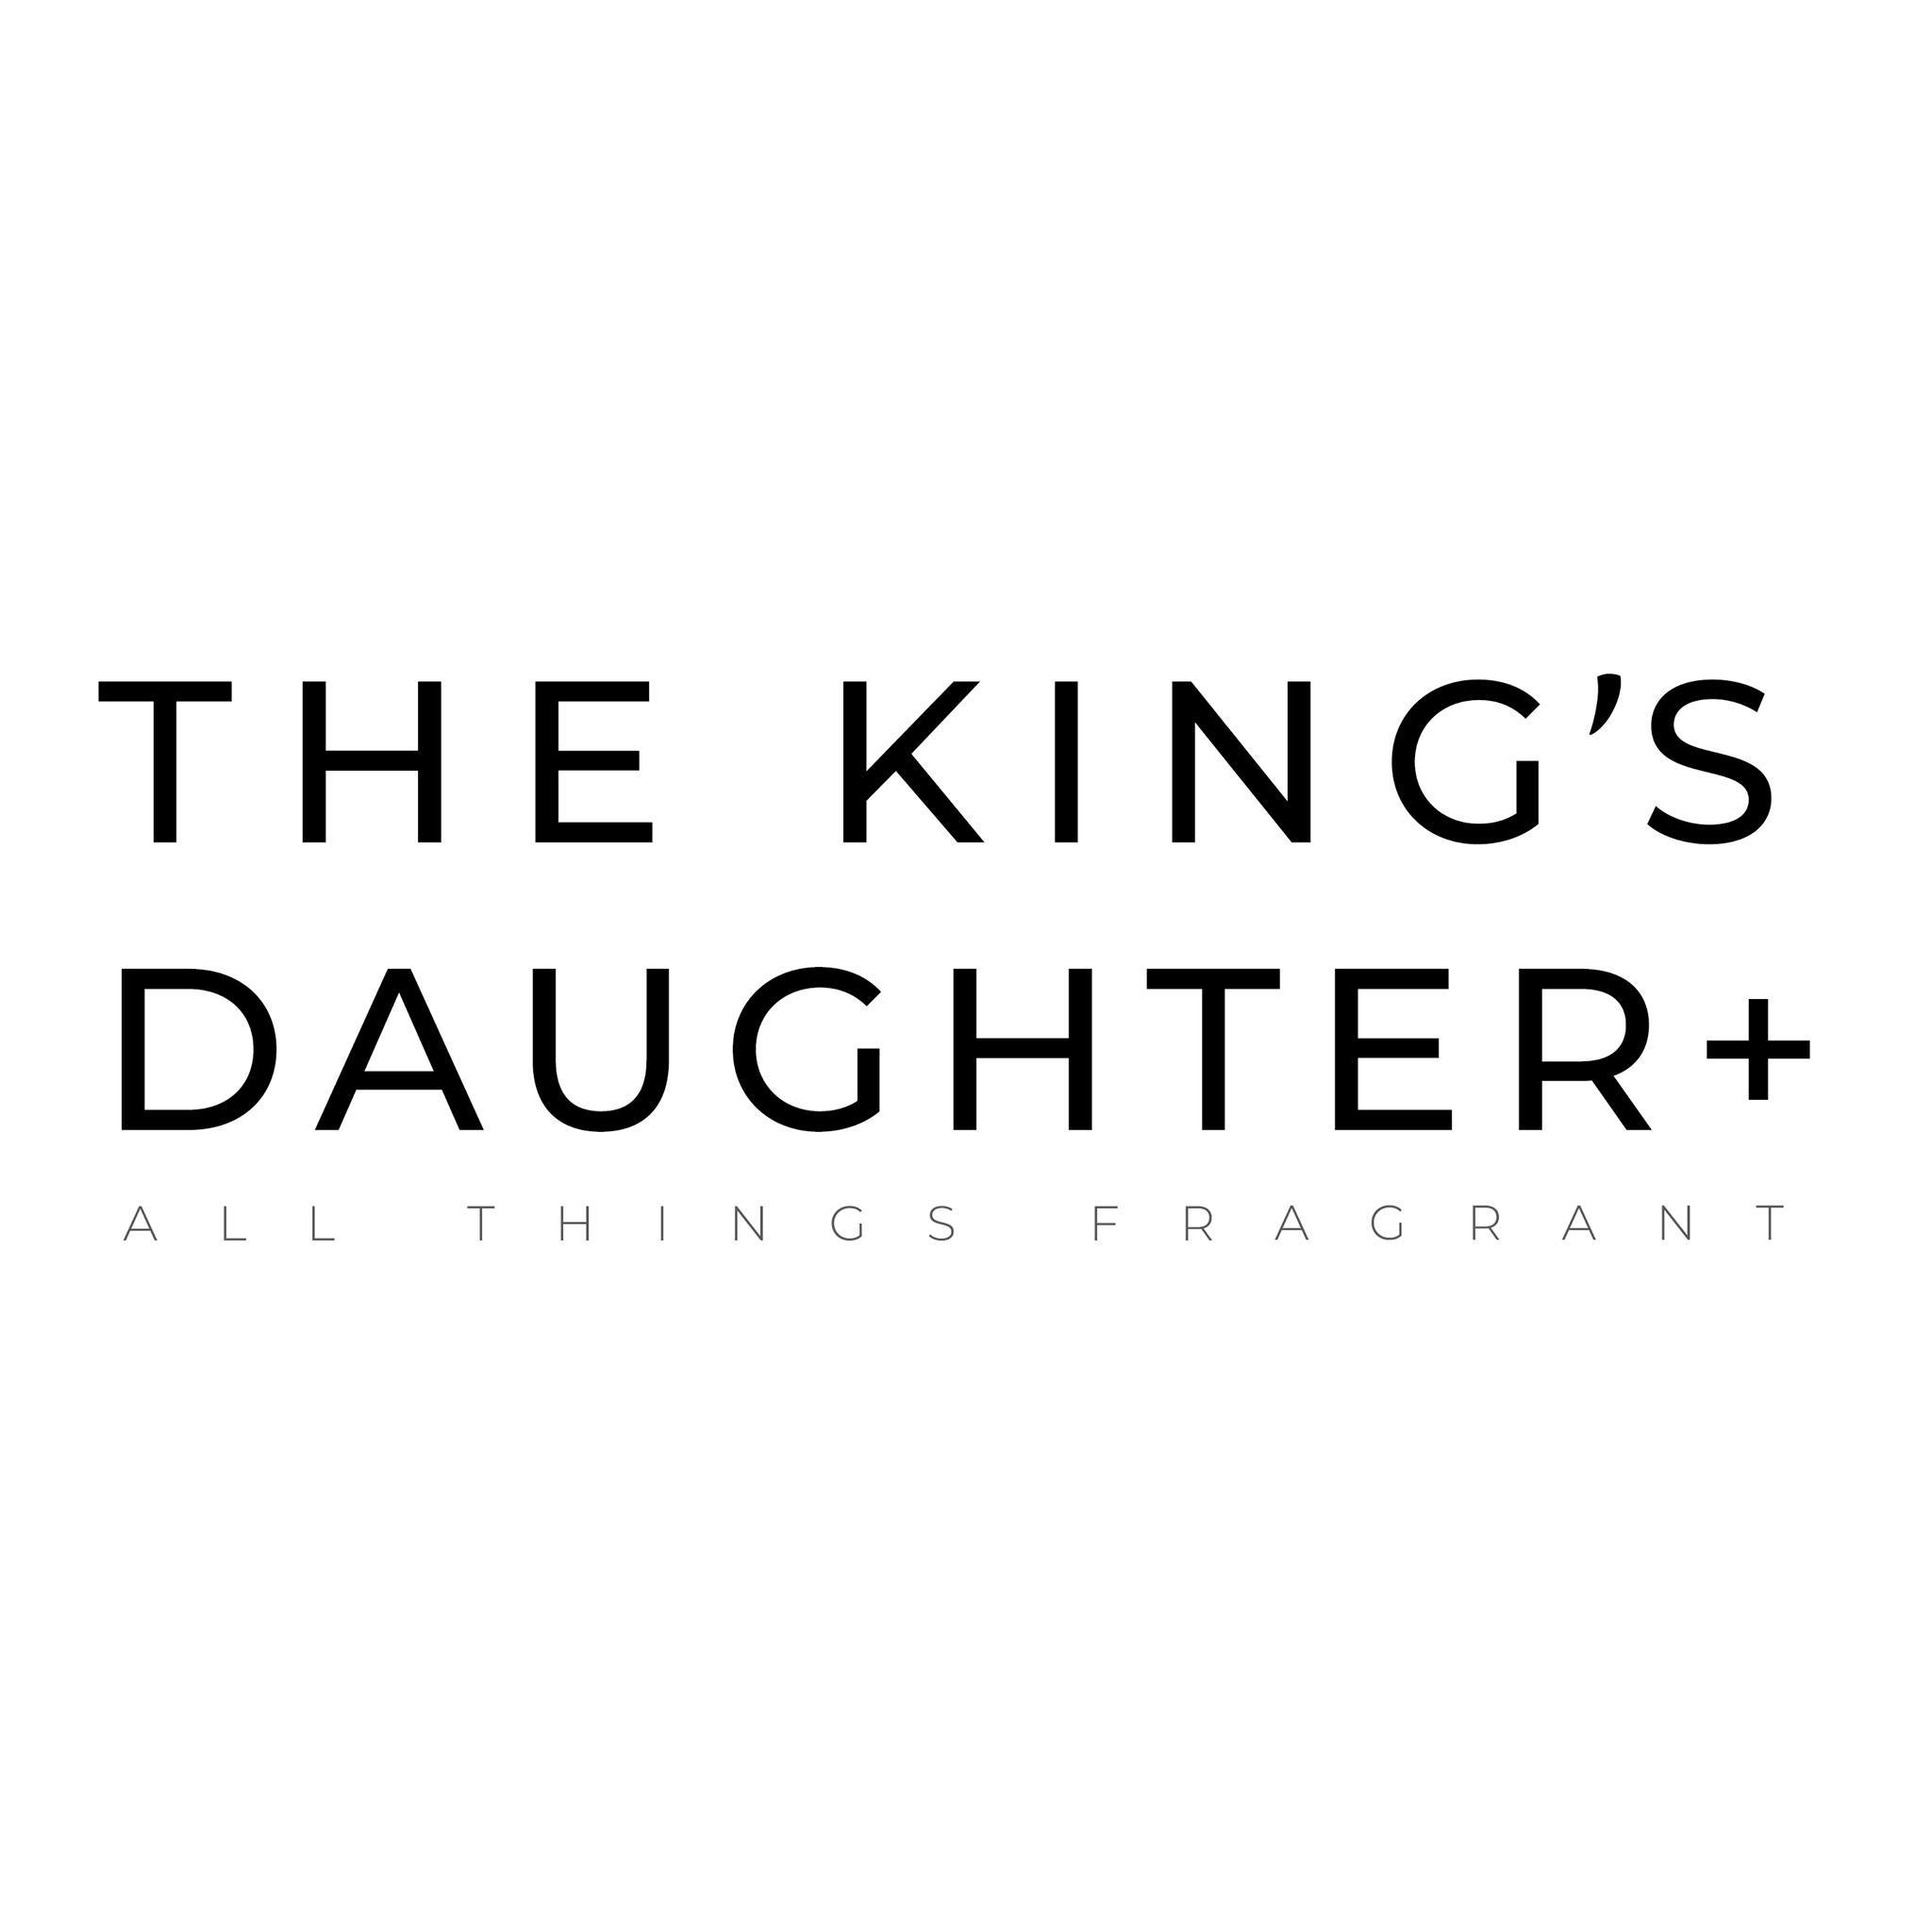 The King's Daughter logo